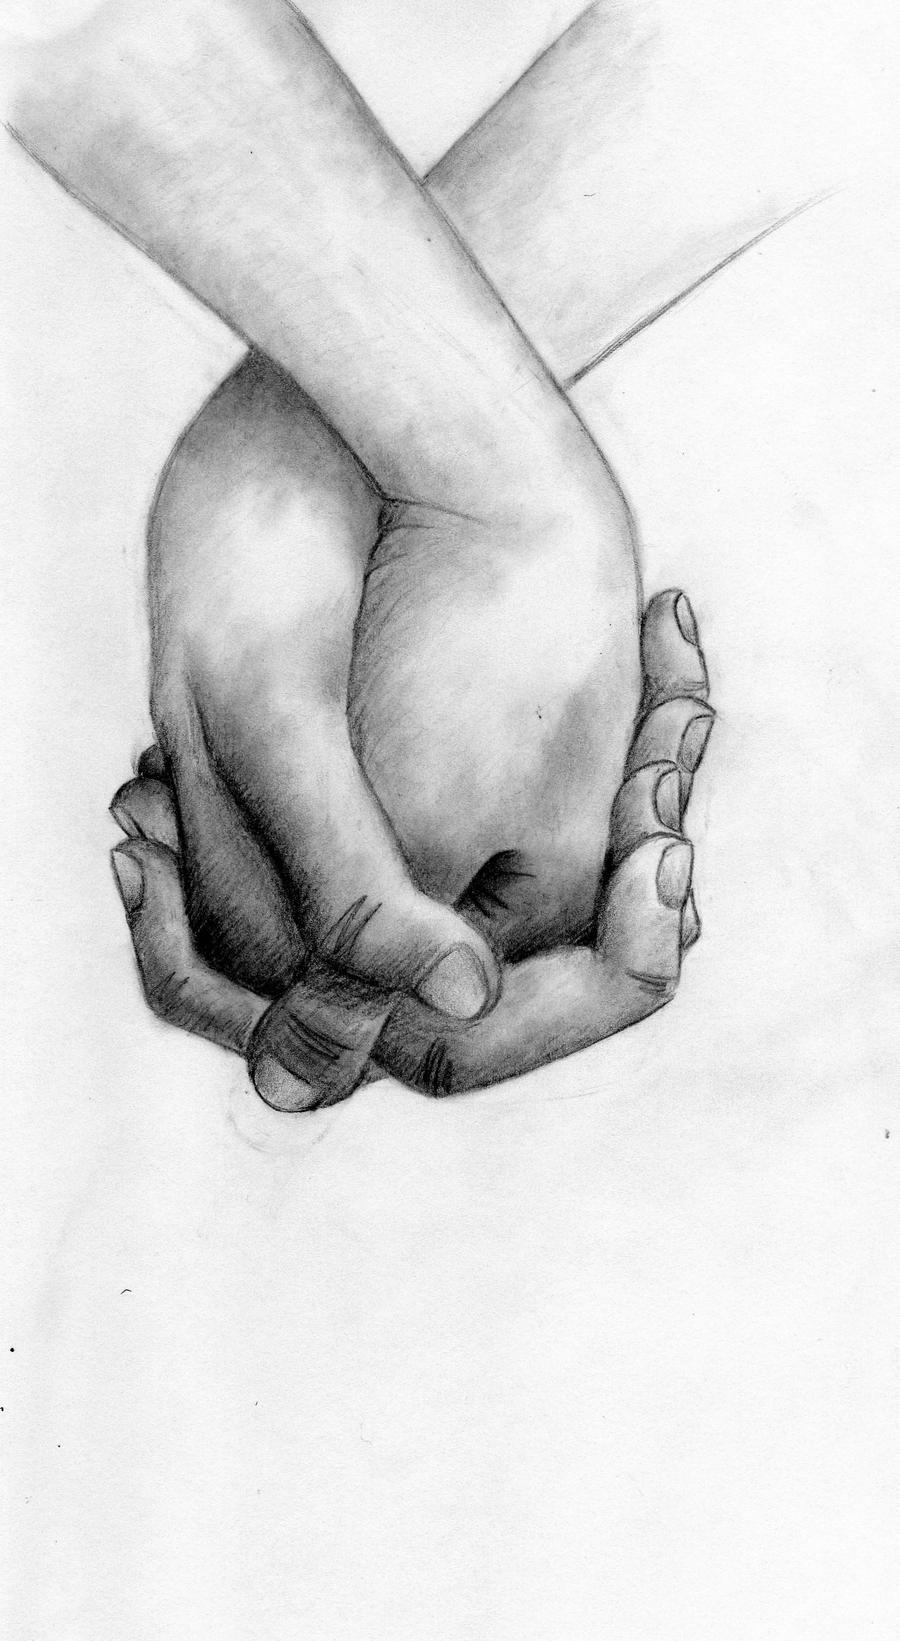 Pencil Drawings of People Holding Hands People Holding Hands Pencil